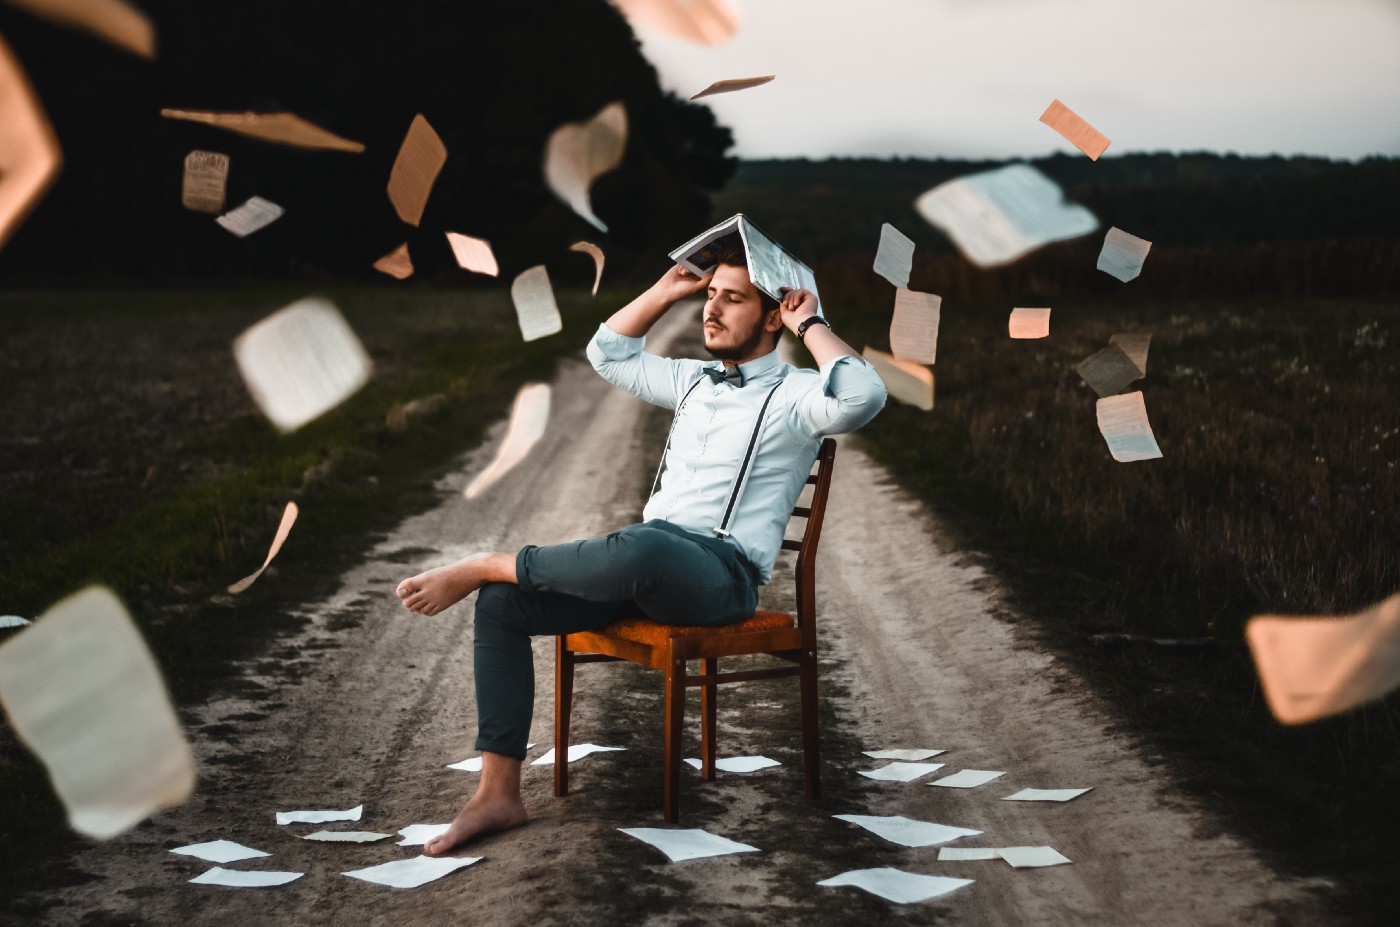 Person sitting on a chair with books and paper all around them